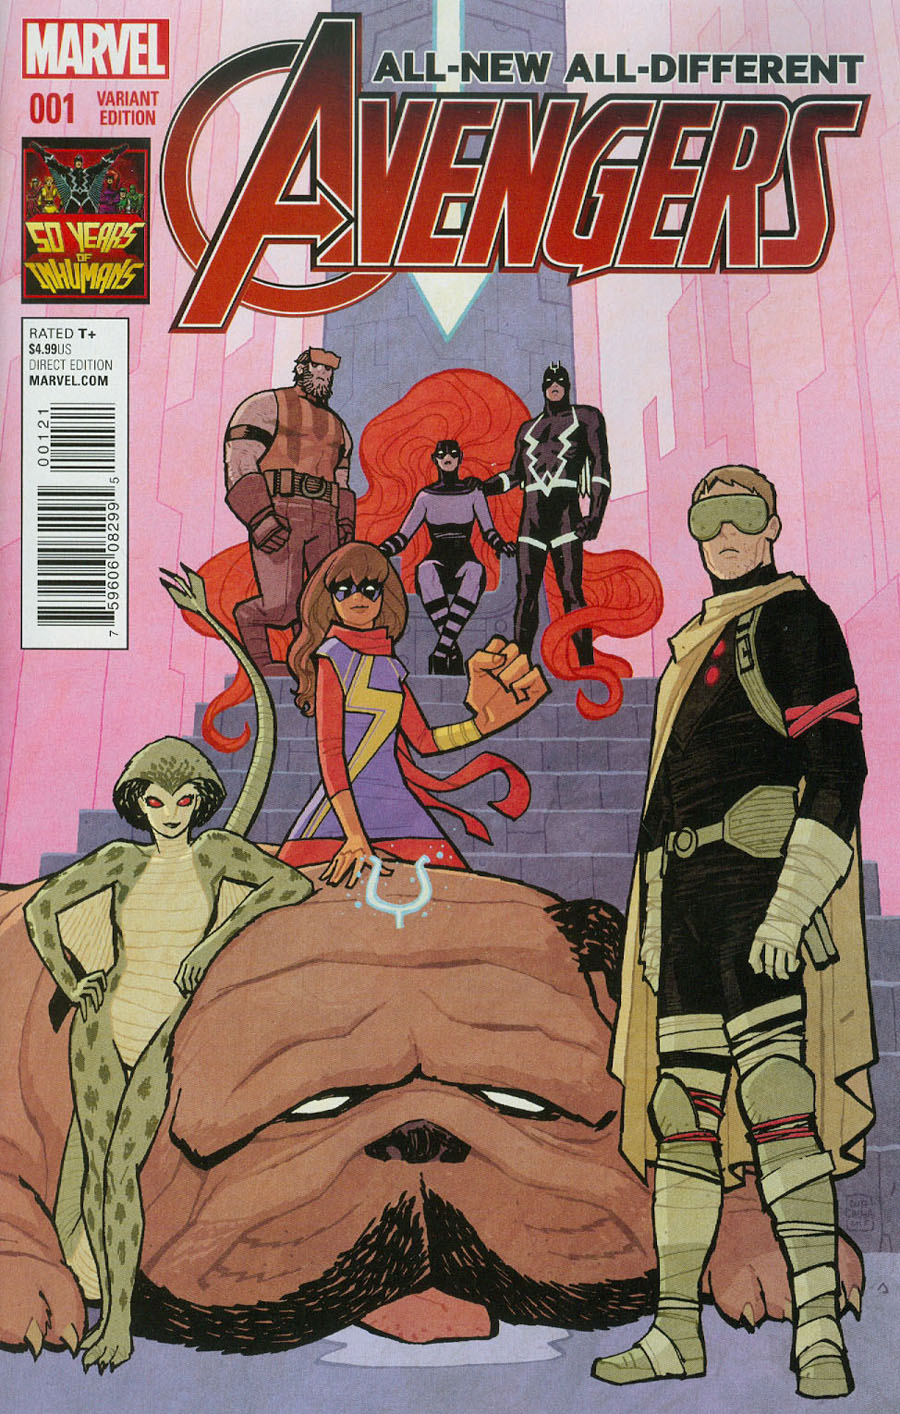 All-New All-Different Avengers #1 Cover F Incentive Cliff Chiang Inhumans 50th Anniversary Variant Cover